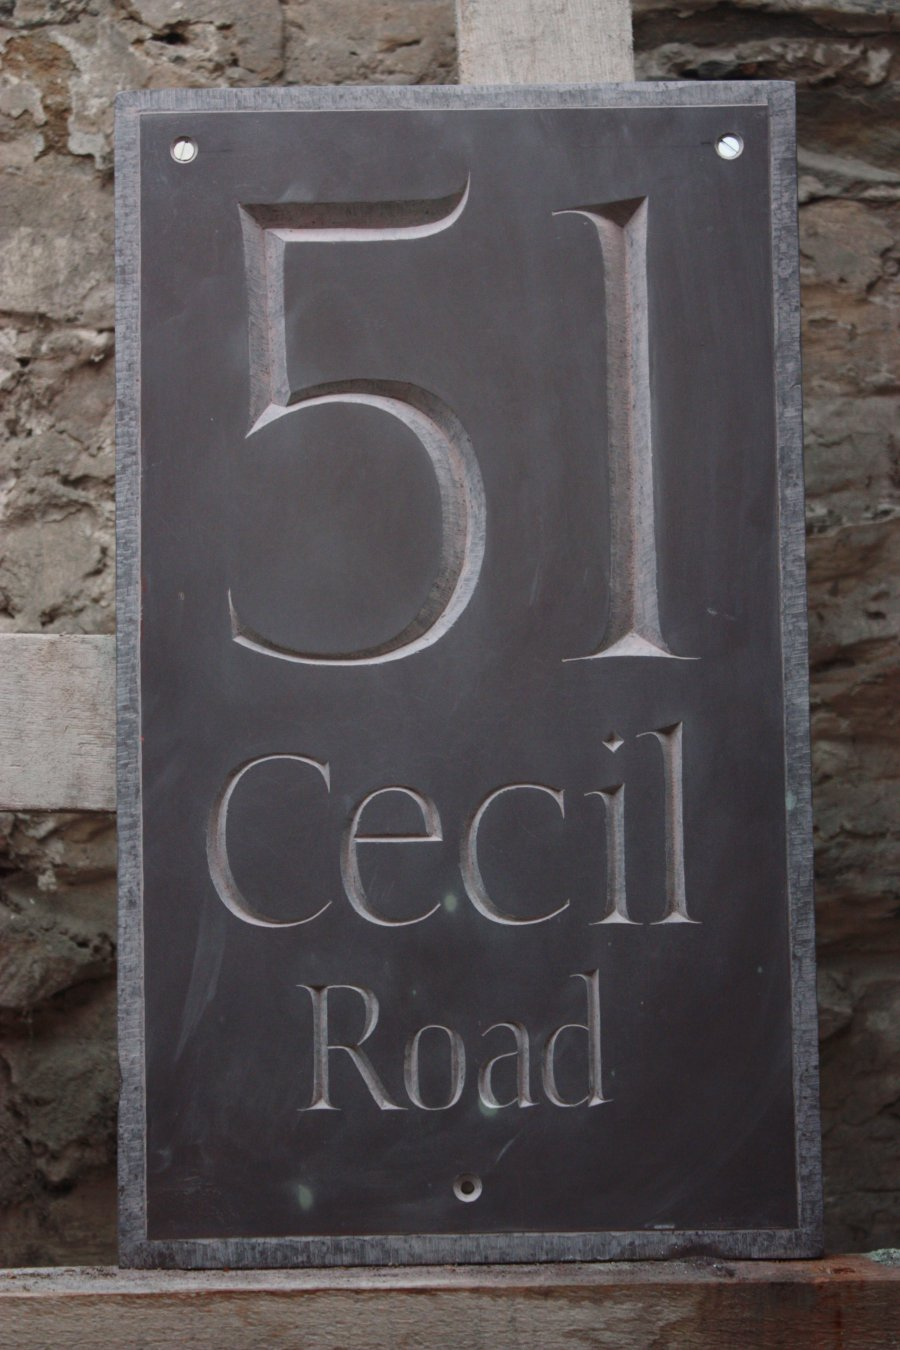 Cecil Road House name